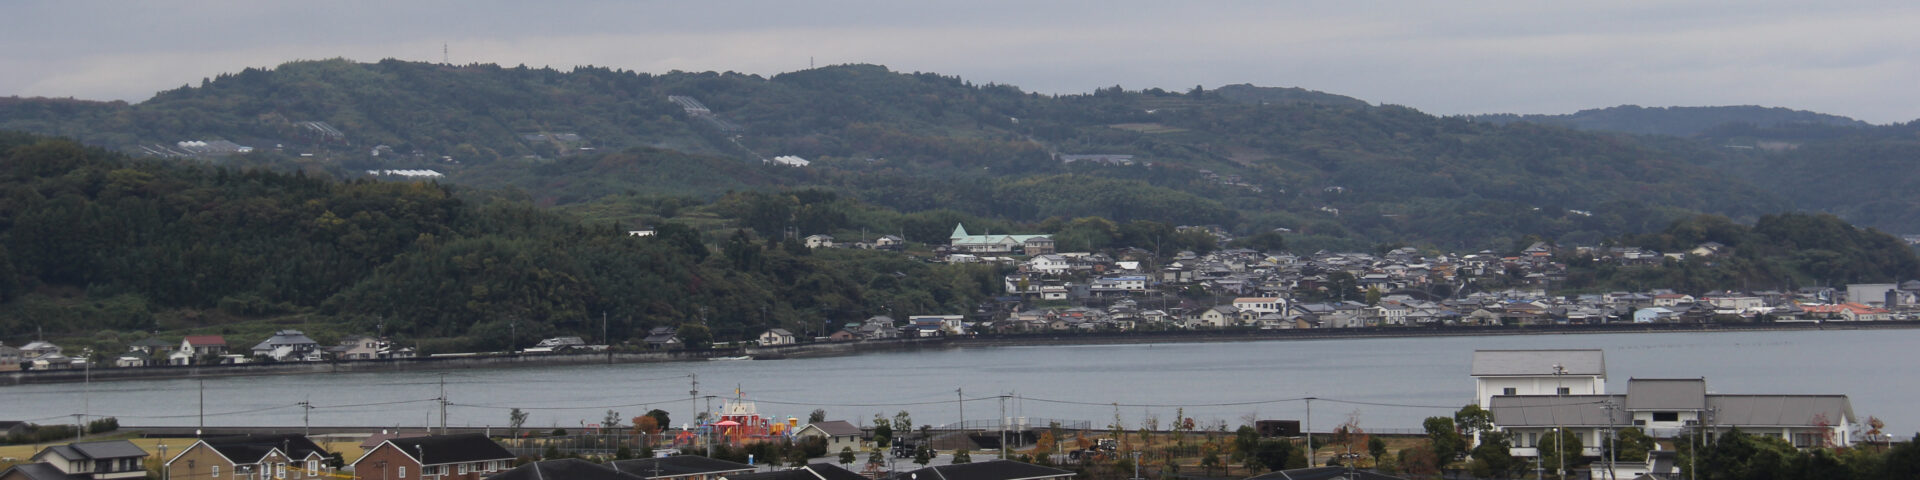 Overview of Kitsuki, Oita